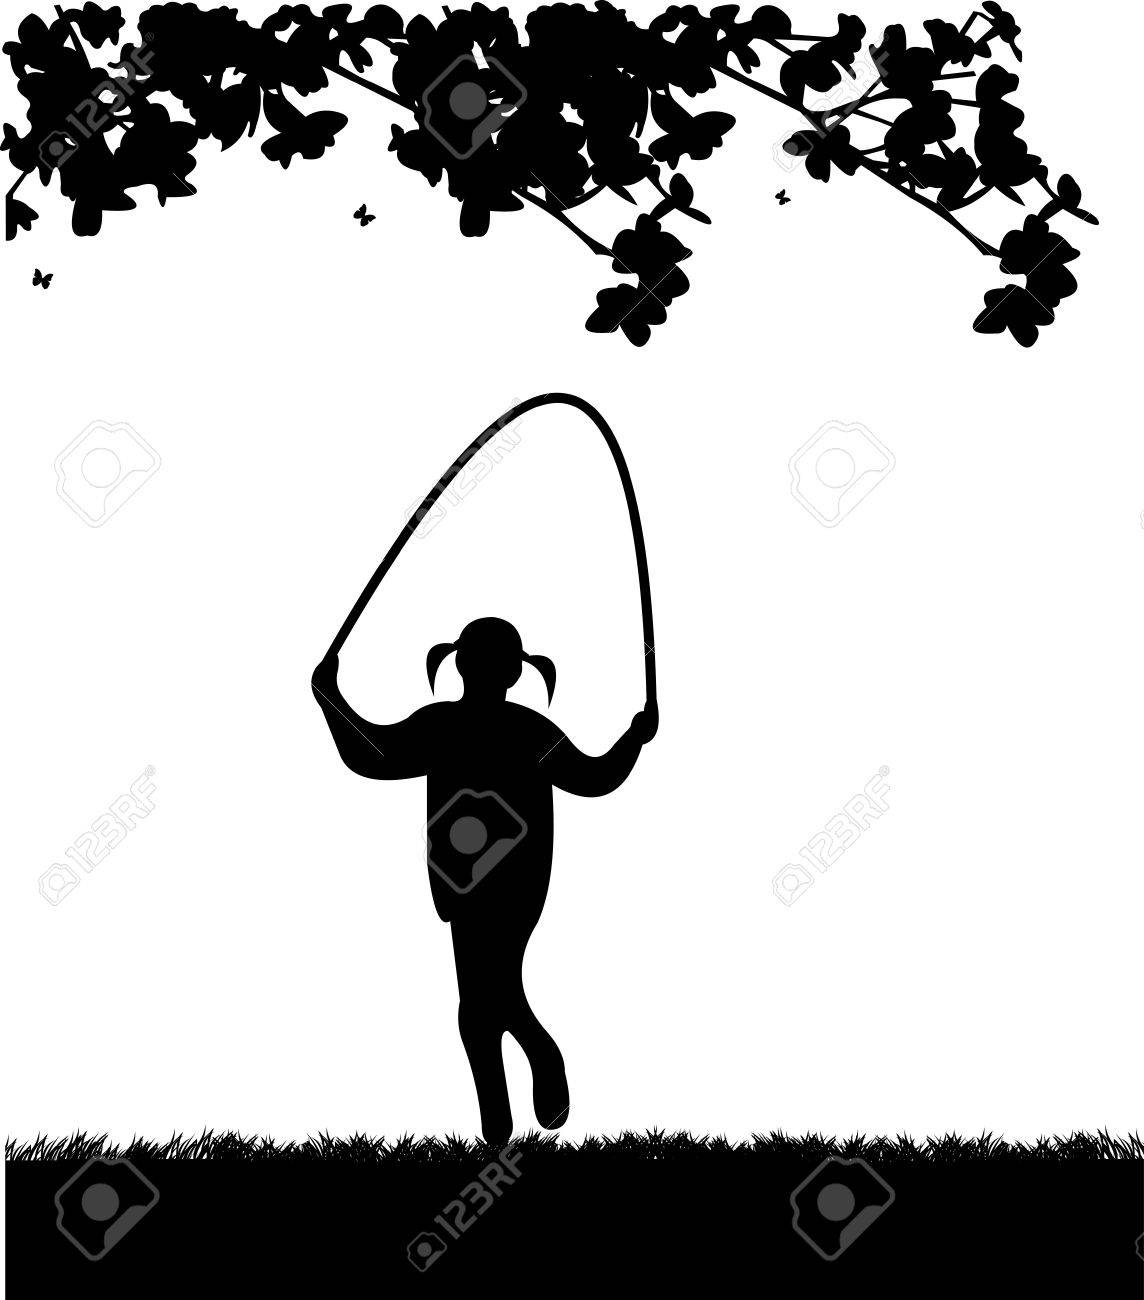 A little girl playing skipping rope in park in spring silhouette, one in the series of similar images Stock Vector - 18708611